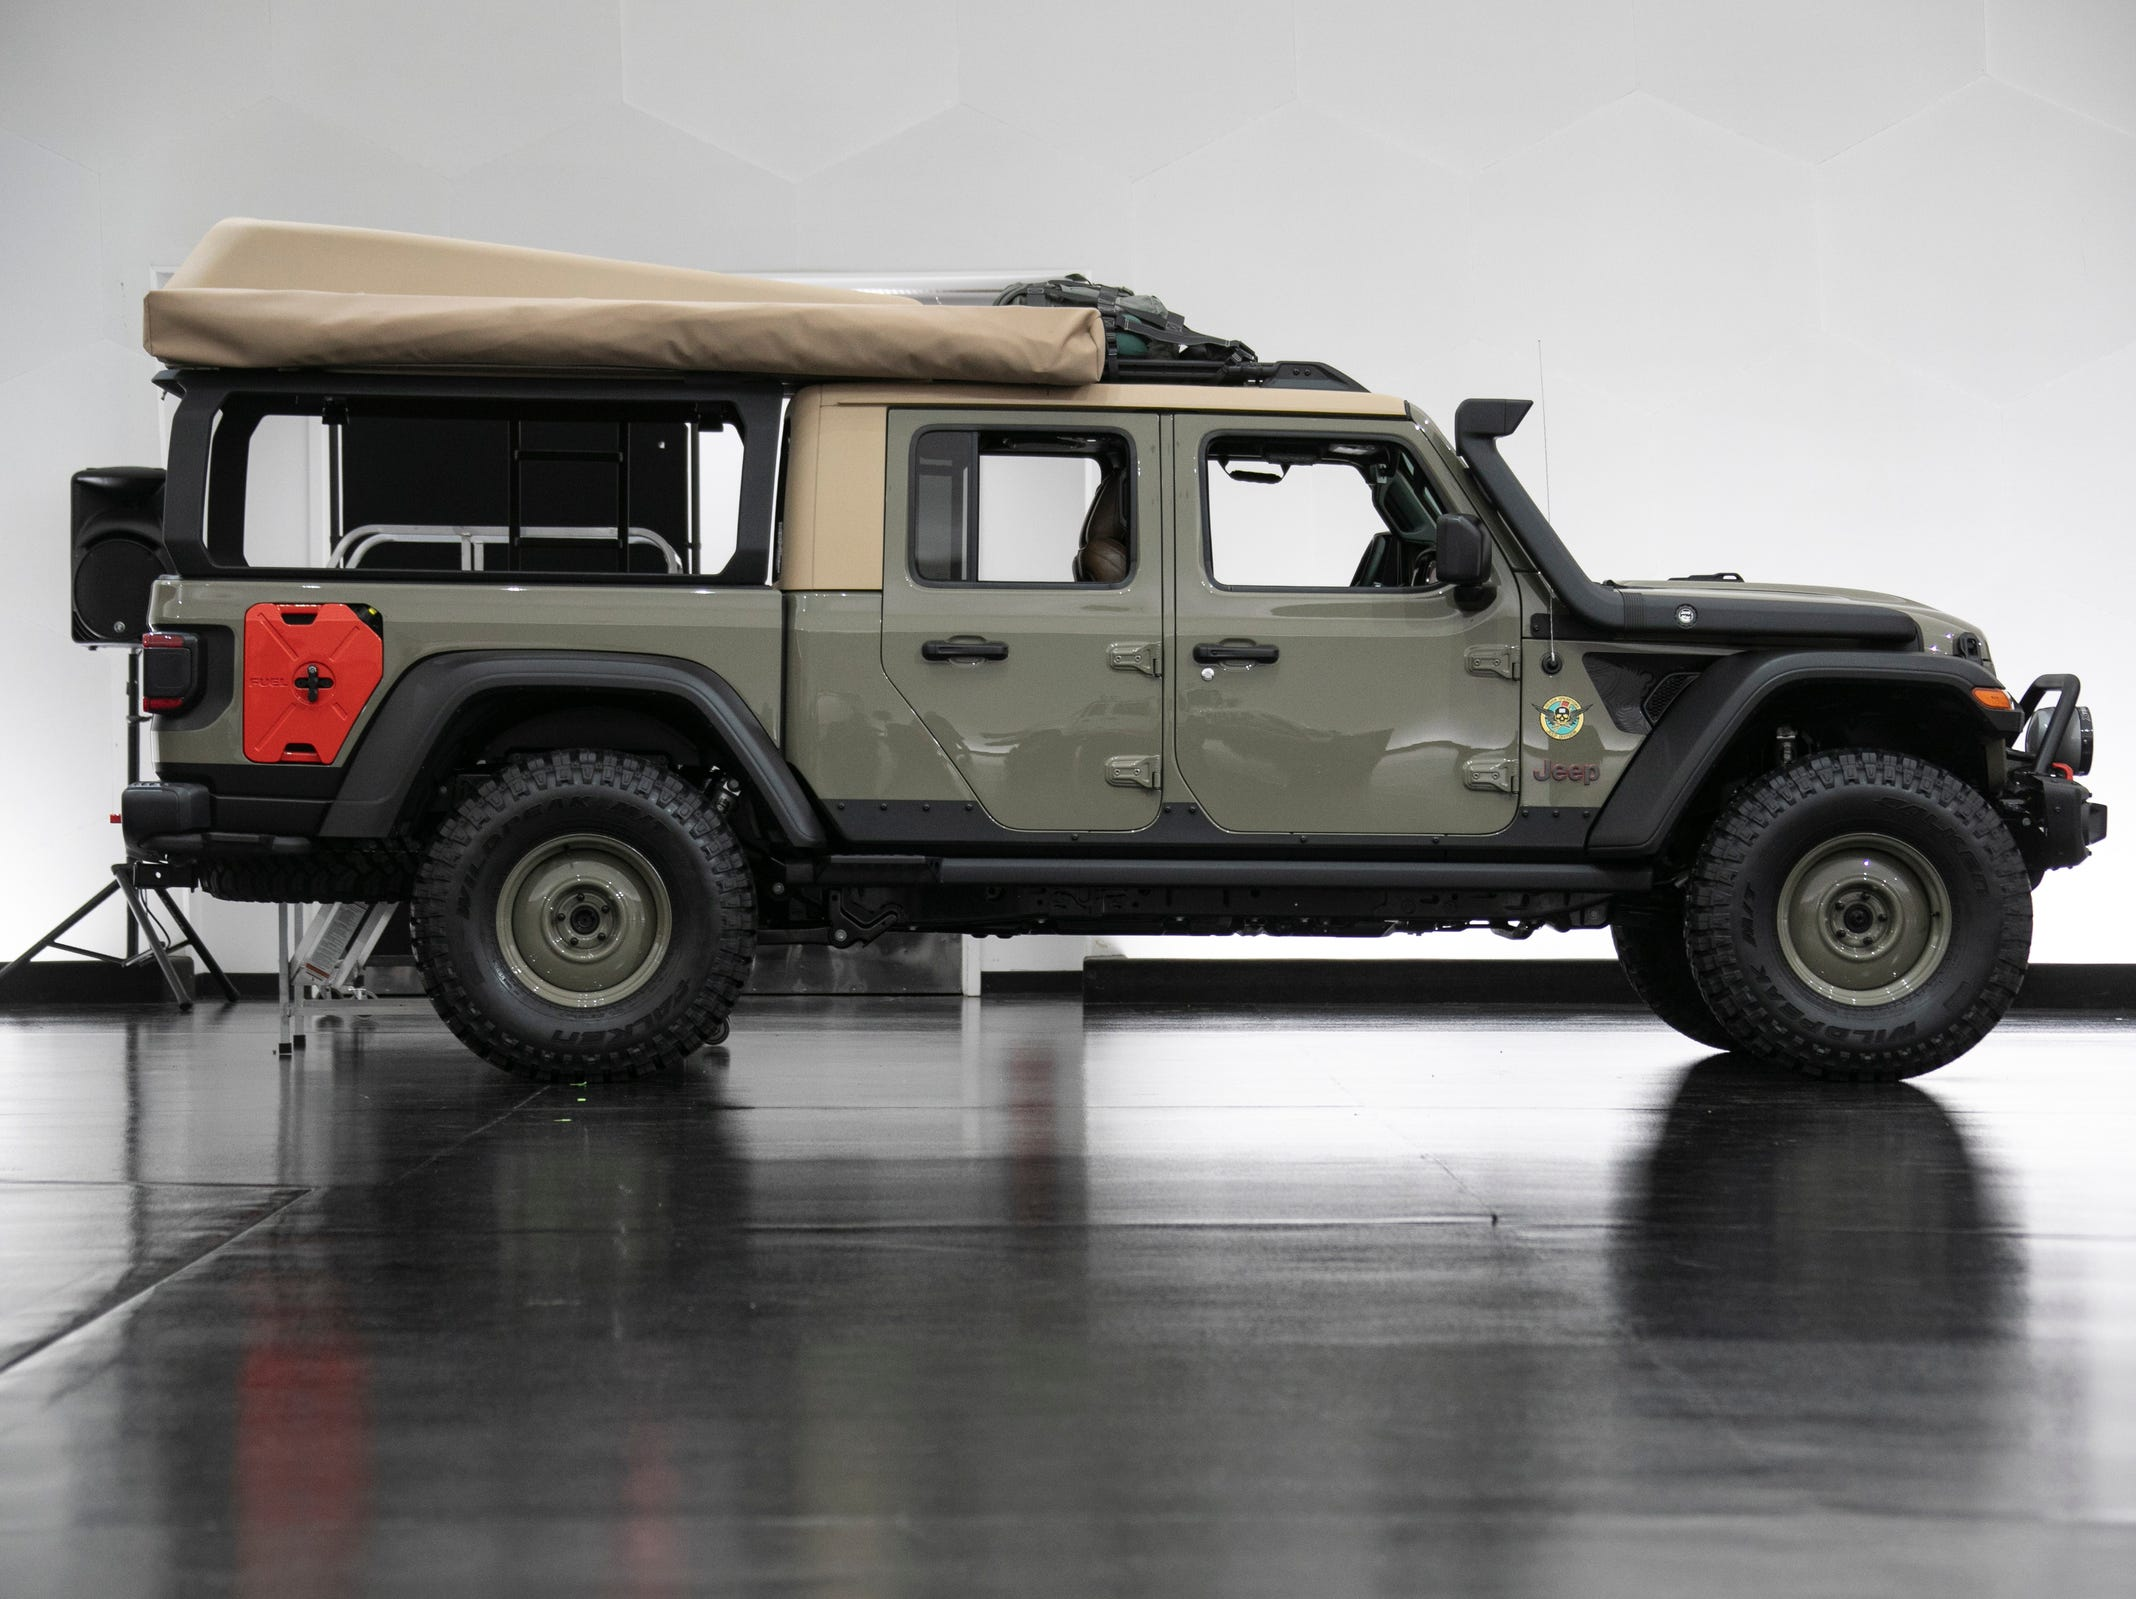 Jeep and Mopar brands debut six concept vehicles including the Jeep Wayout Friday, April 5, 2019 at the Fiat Chrysler Tech Center and headquarters for the 53rd annual Moab Easter Jeep Safari. The Jeep Wayout showcases a full roof-top tent and custom, large sprawling canopy. The Wayout's body armored exterior features a new Gator Green color that will be available on all production Gladiator models.